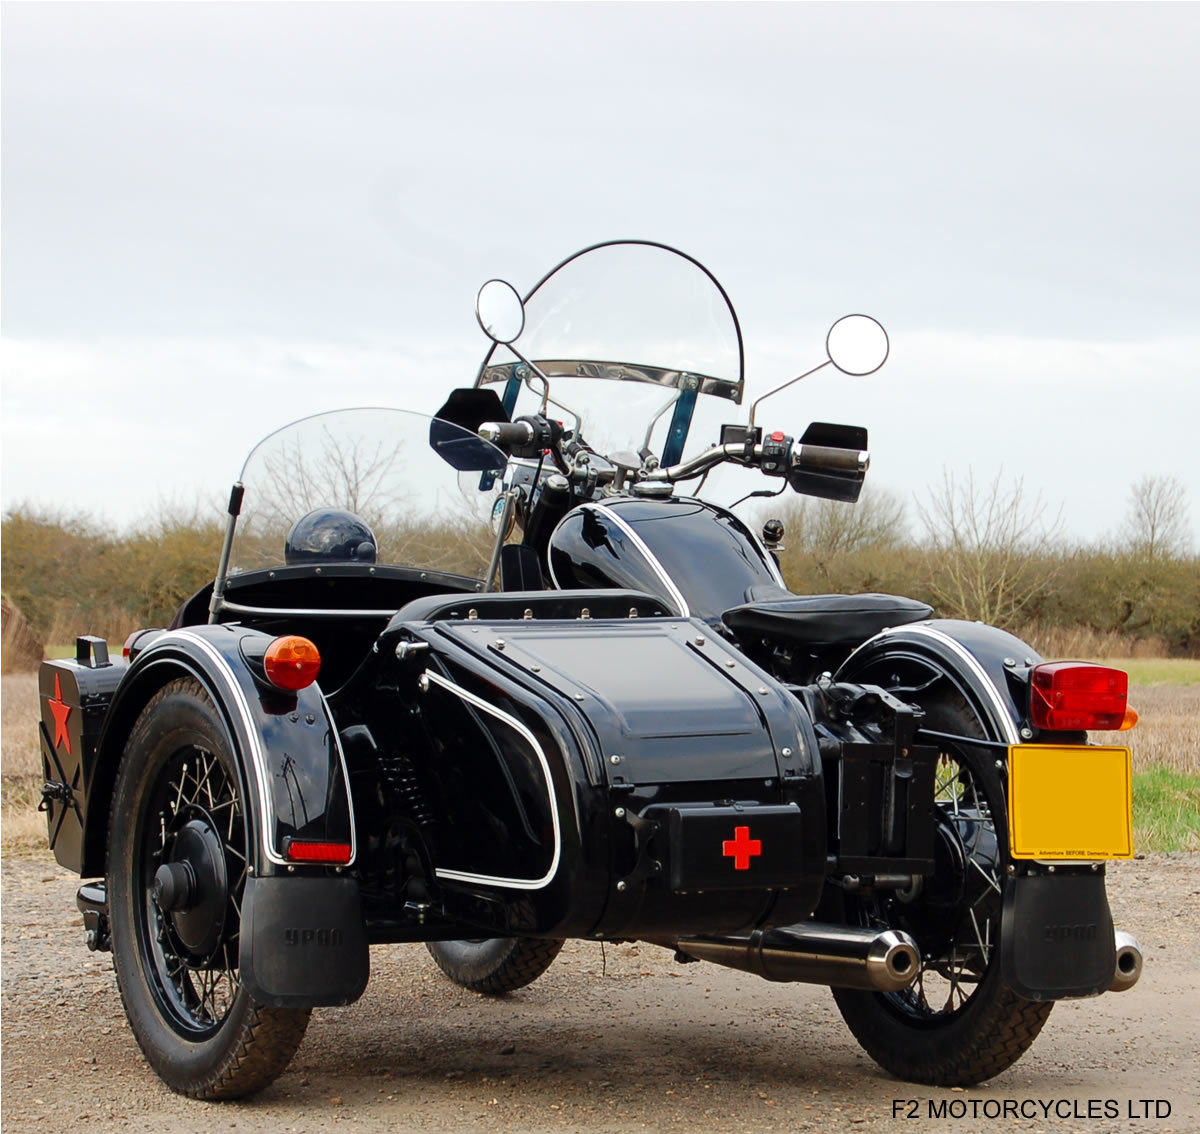 2011 Ural 750 Retro Sidecar, UK spec, UK registered SOLD (picture 3 of 5)